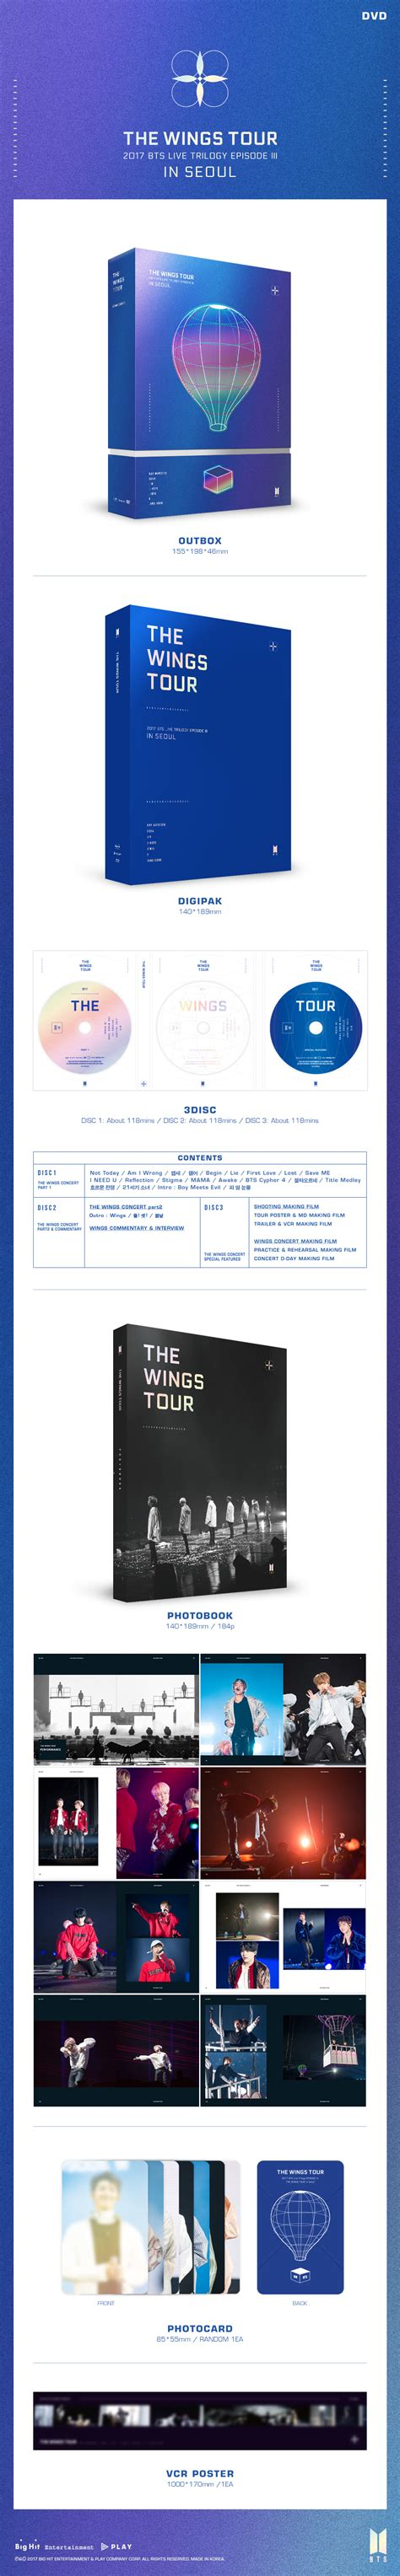 bts the wings tour dvd info 2017 bts live trilogy episode iii the wings tour in